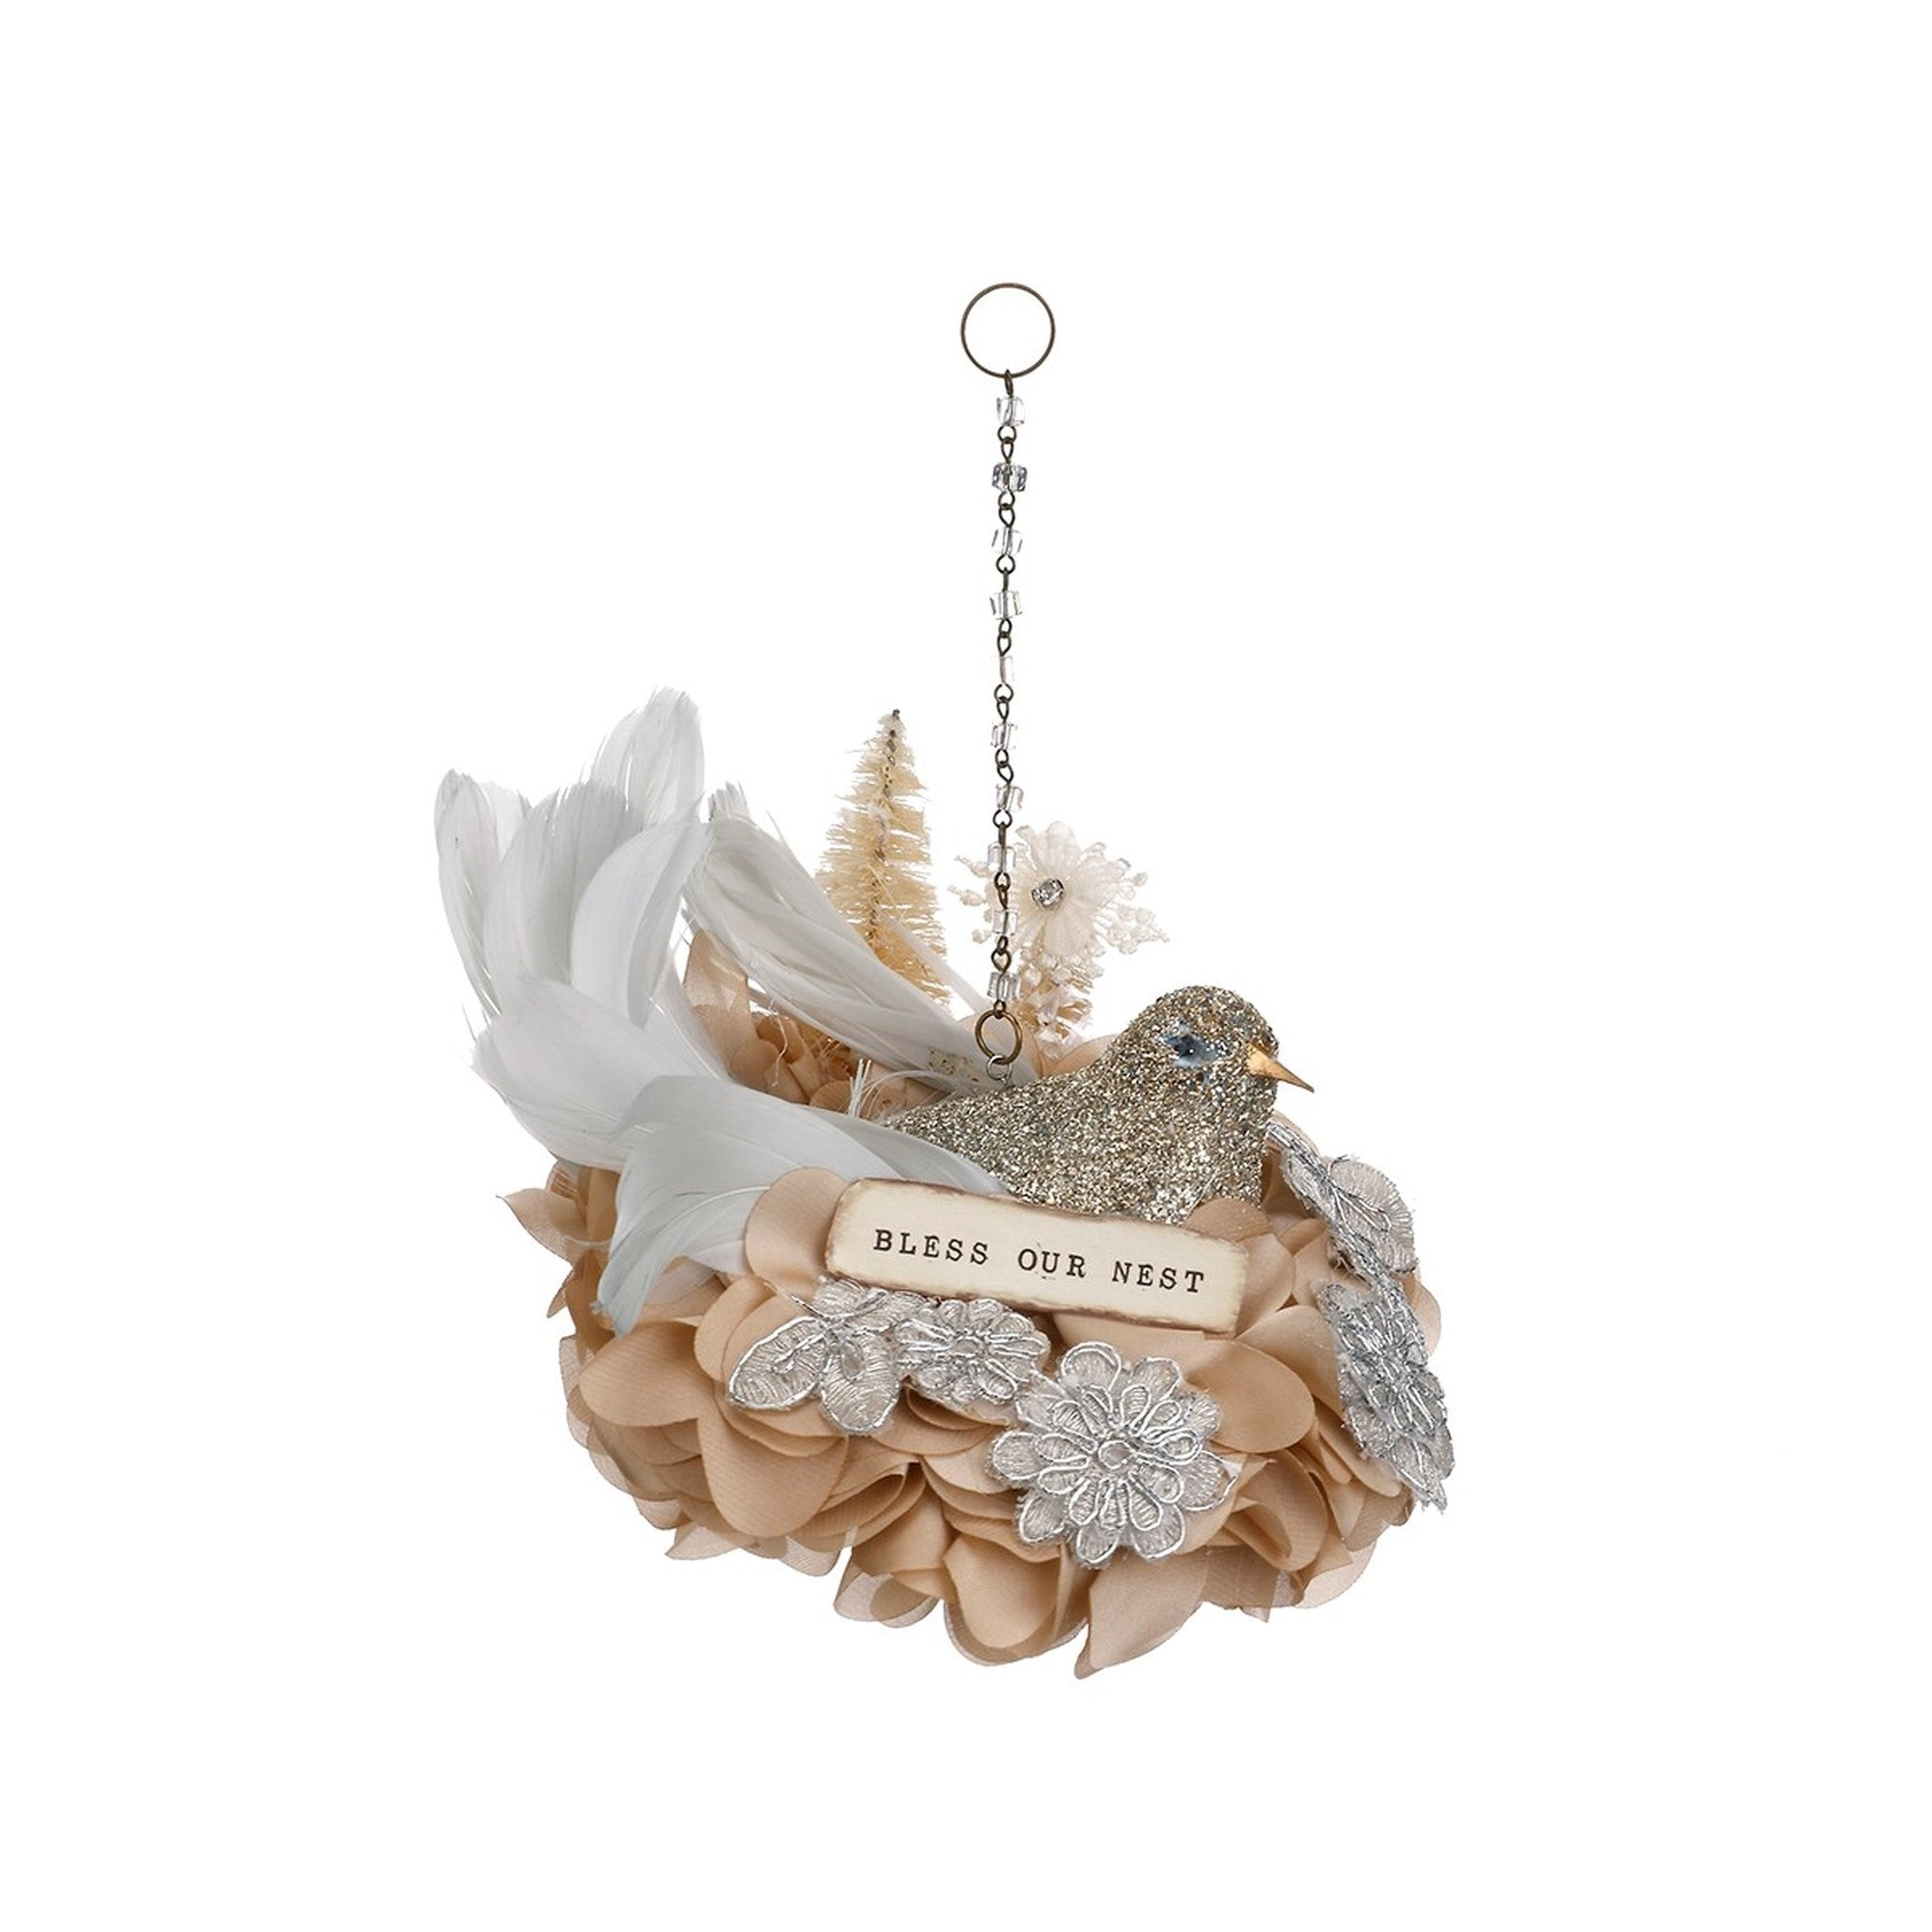 Bless Our Nest Ornament, DO-Demdaco, Putti Fine Furnishings